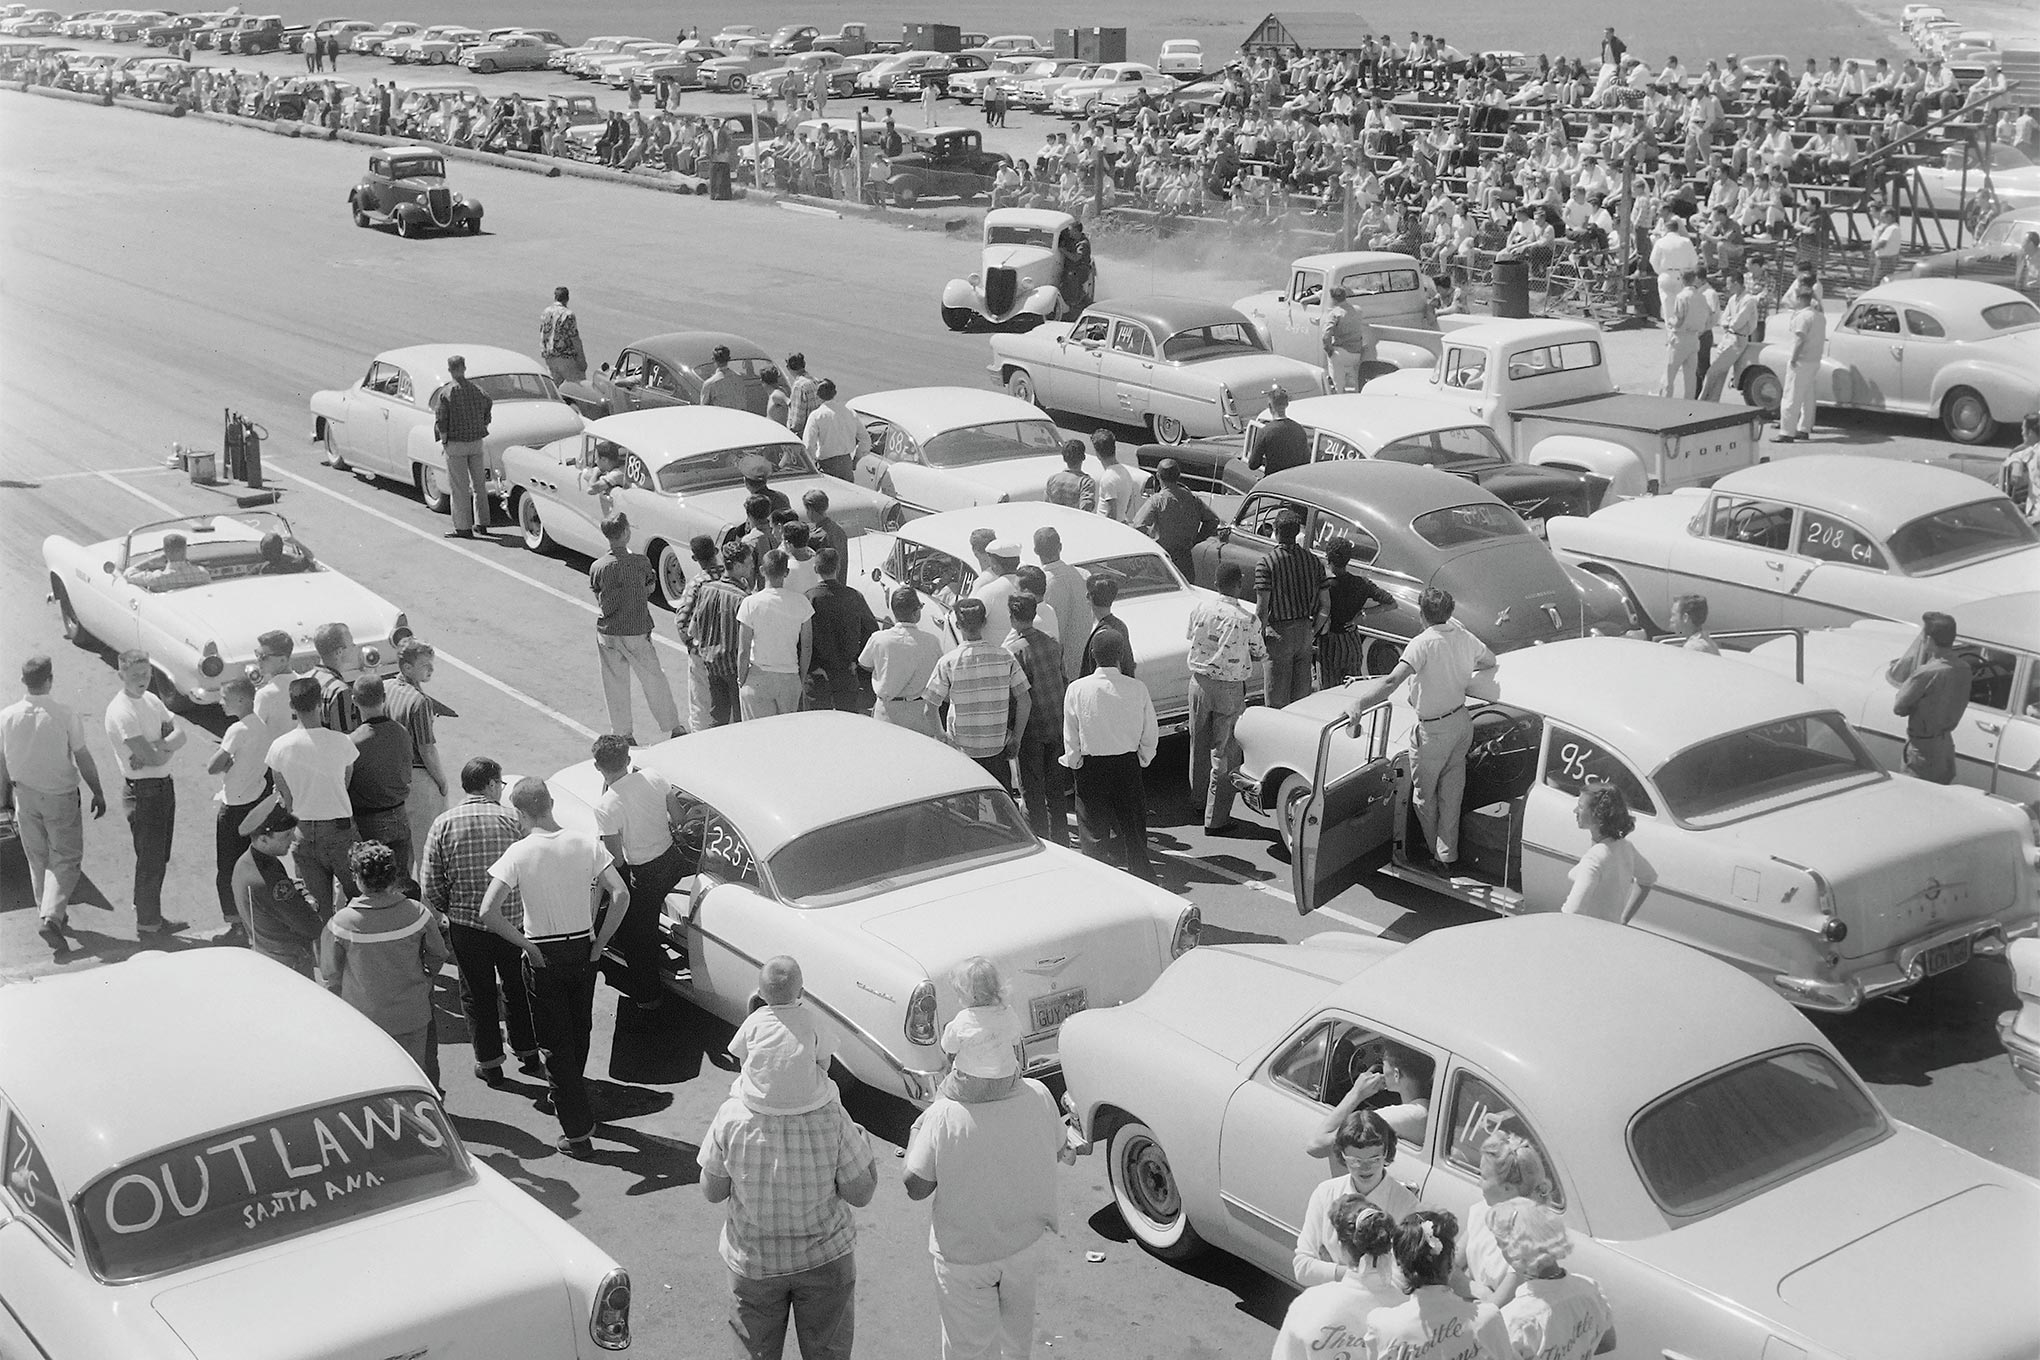 Here's another view of Santa Ana that same day, shot from the giant scaffolding erected for Life's photographer. In continuous operation from 1950 to mid-1959, the future site of Orange County's John Wayne Airport was the first commercial facility to host weekly drags.